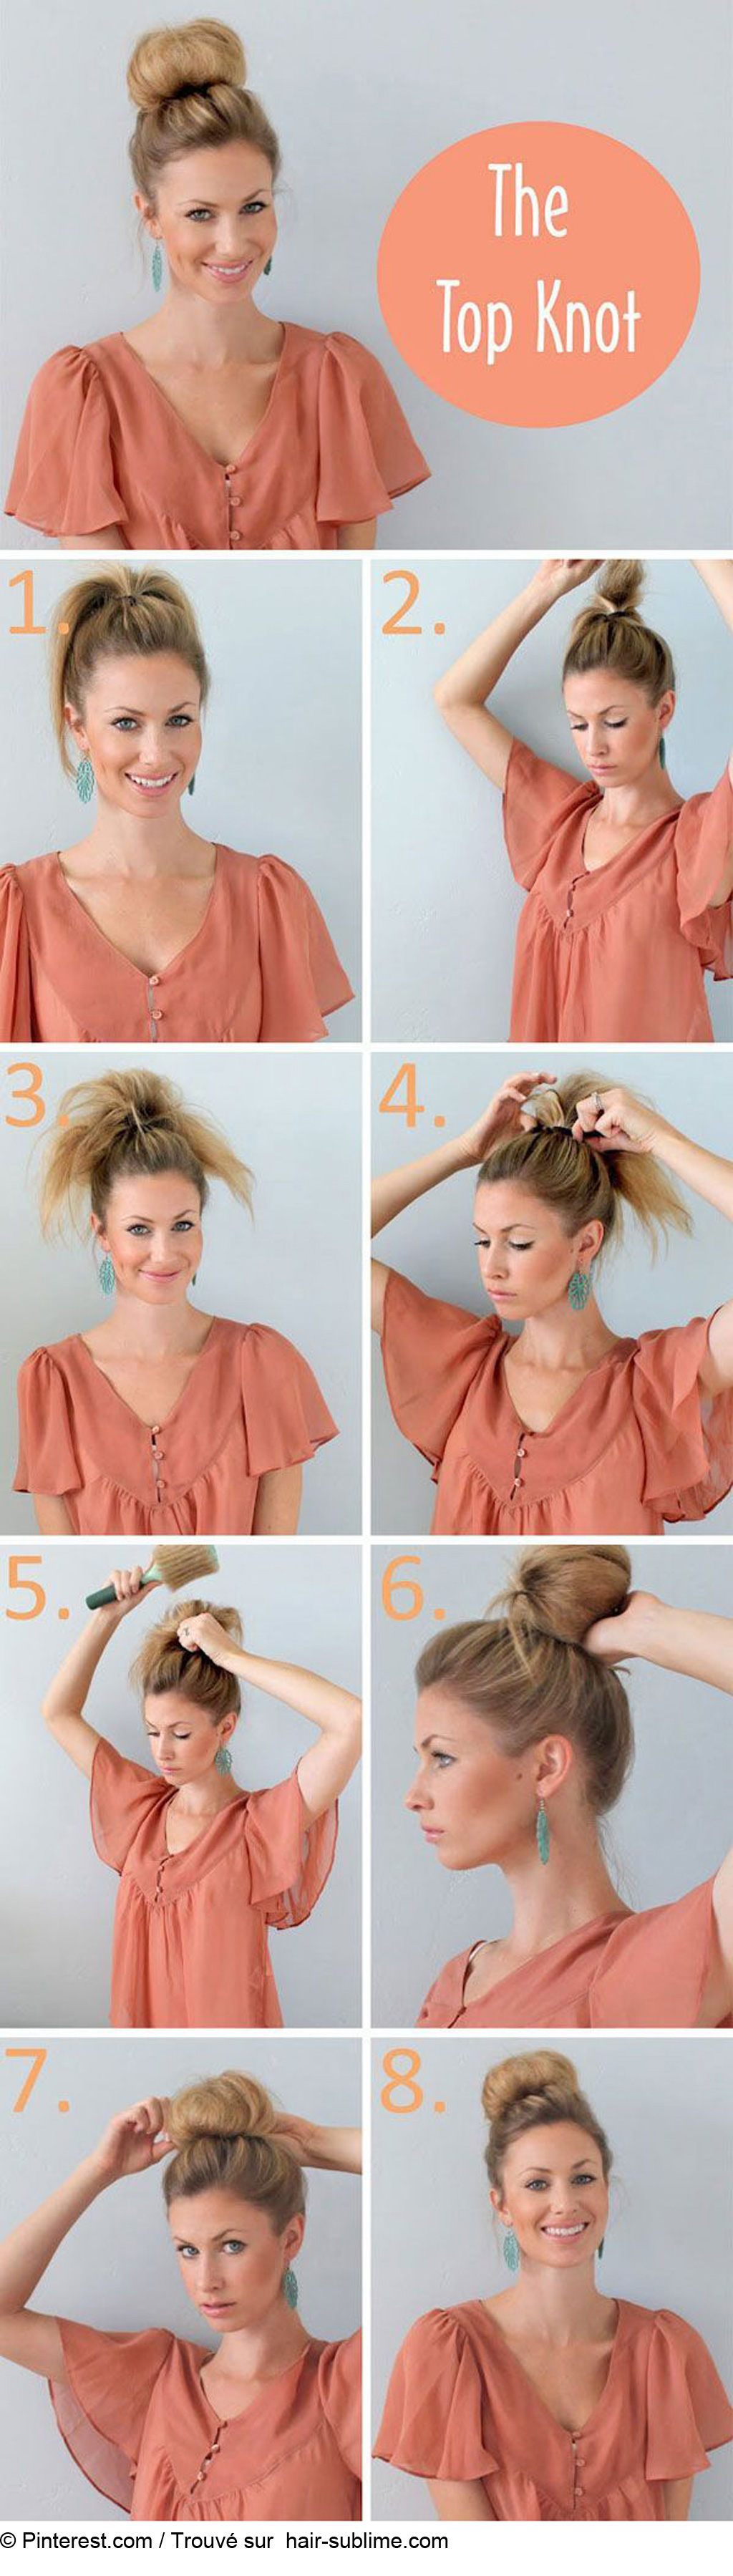 Comment faire un chignon facilement - Faire un chignon ...